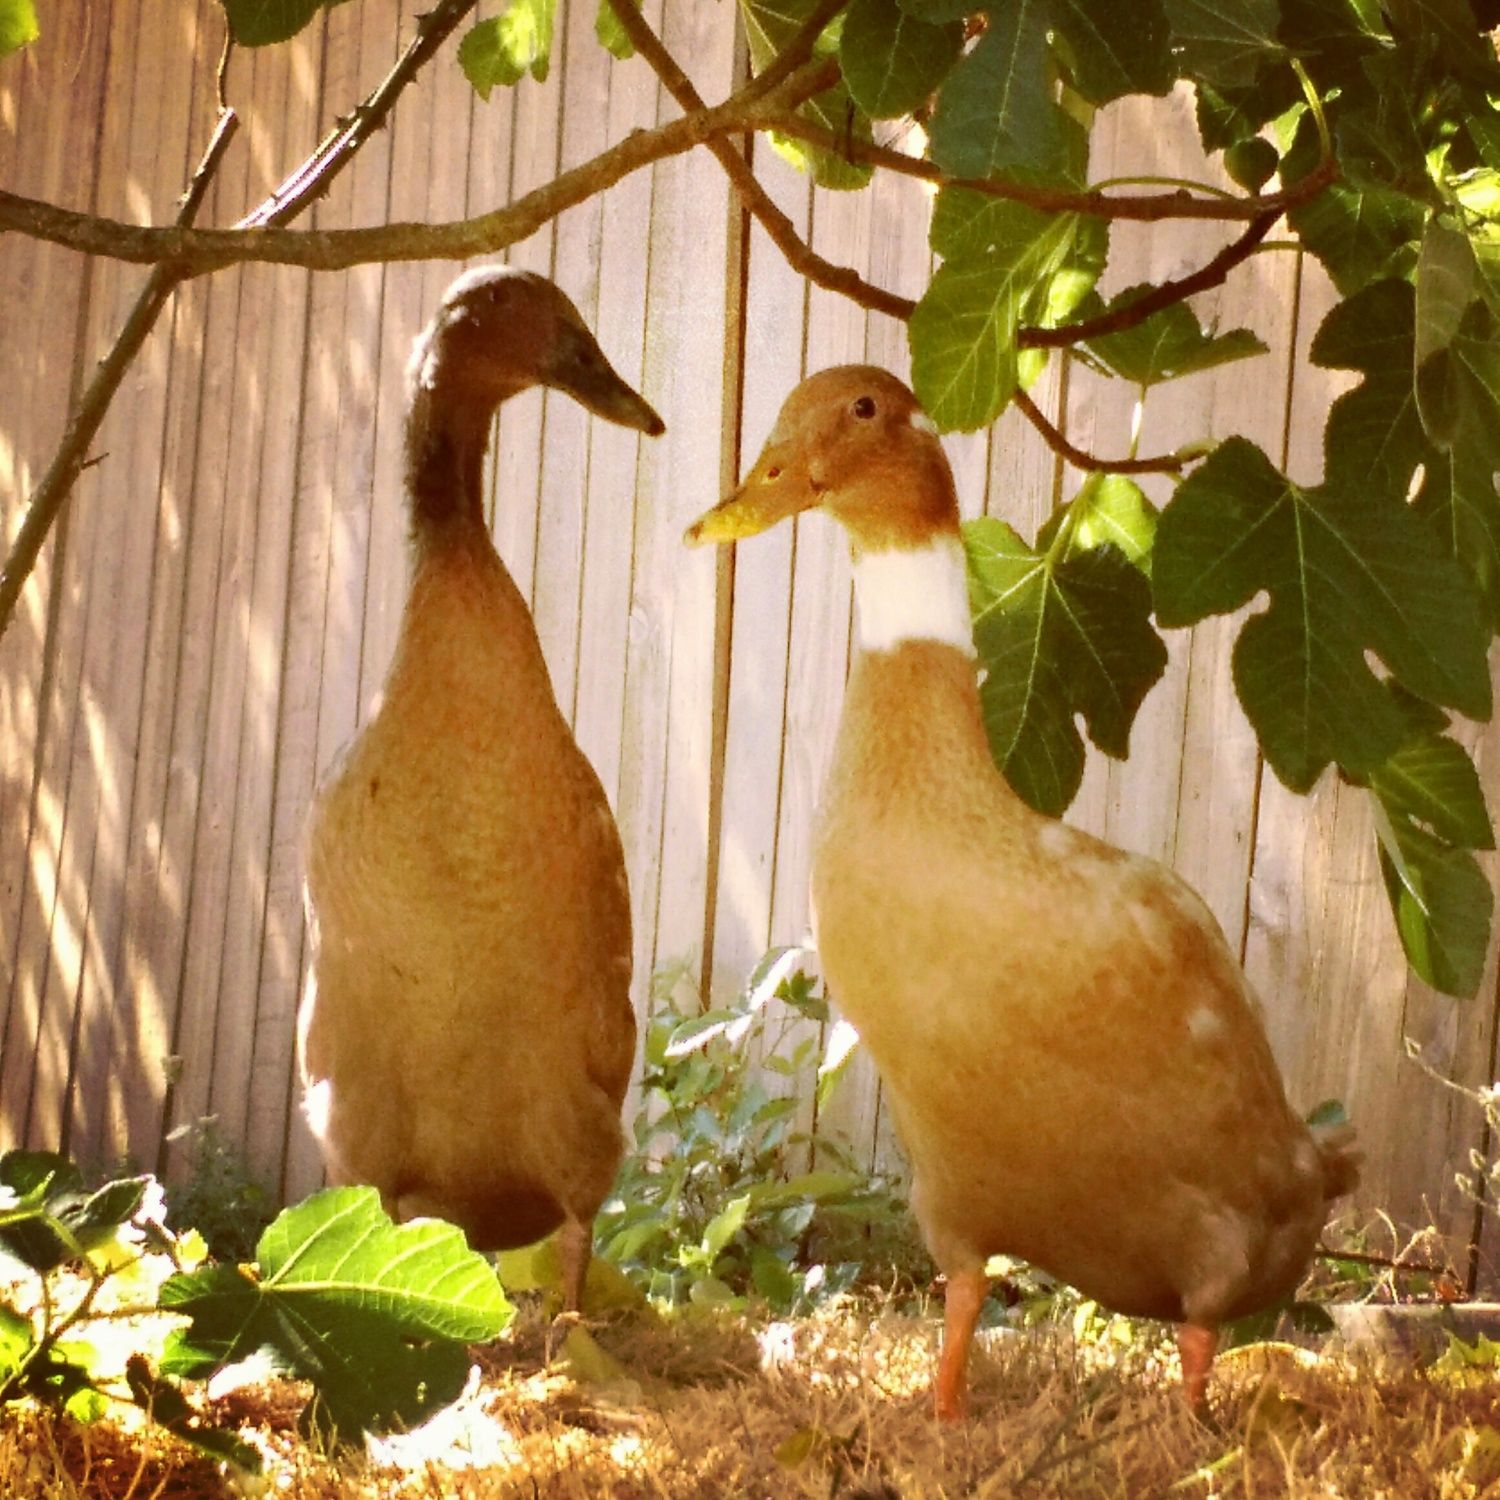 The newest additions to the flock. My 2 Indian Runners, Cheese and Quackers.